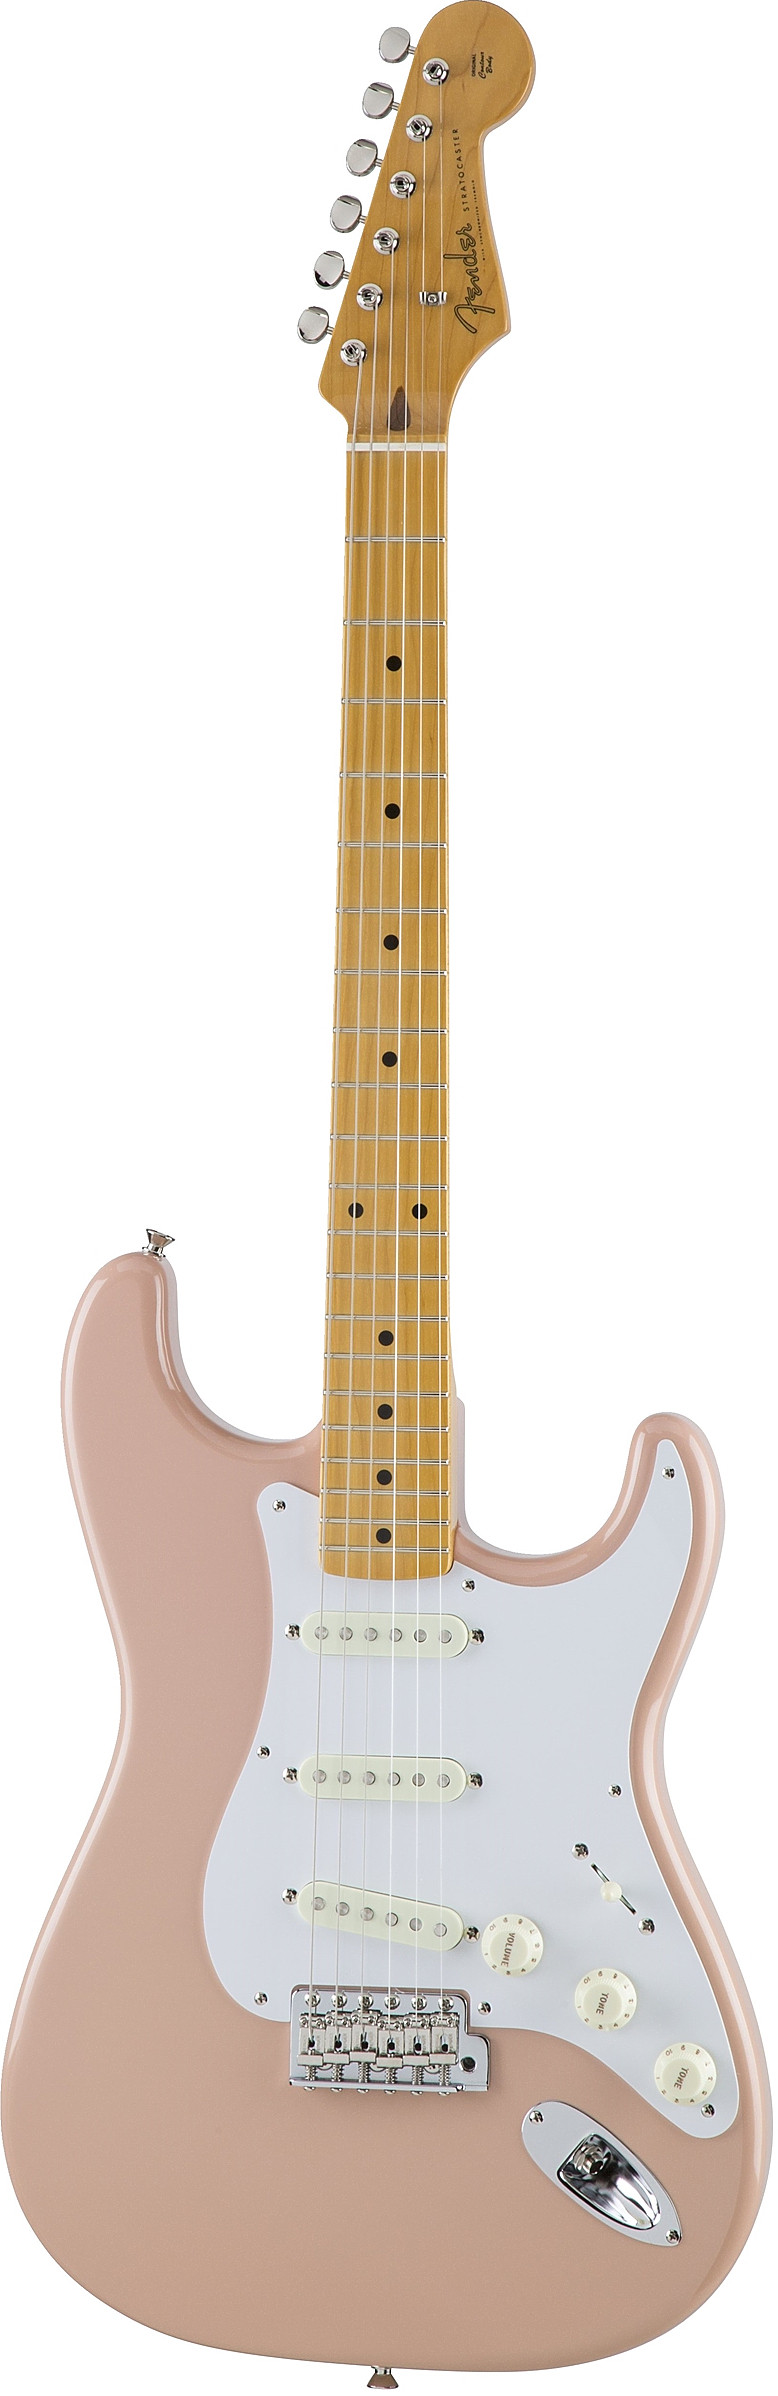 Made in Japan Traditional `58 Stratocaster by Fender